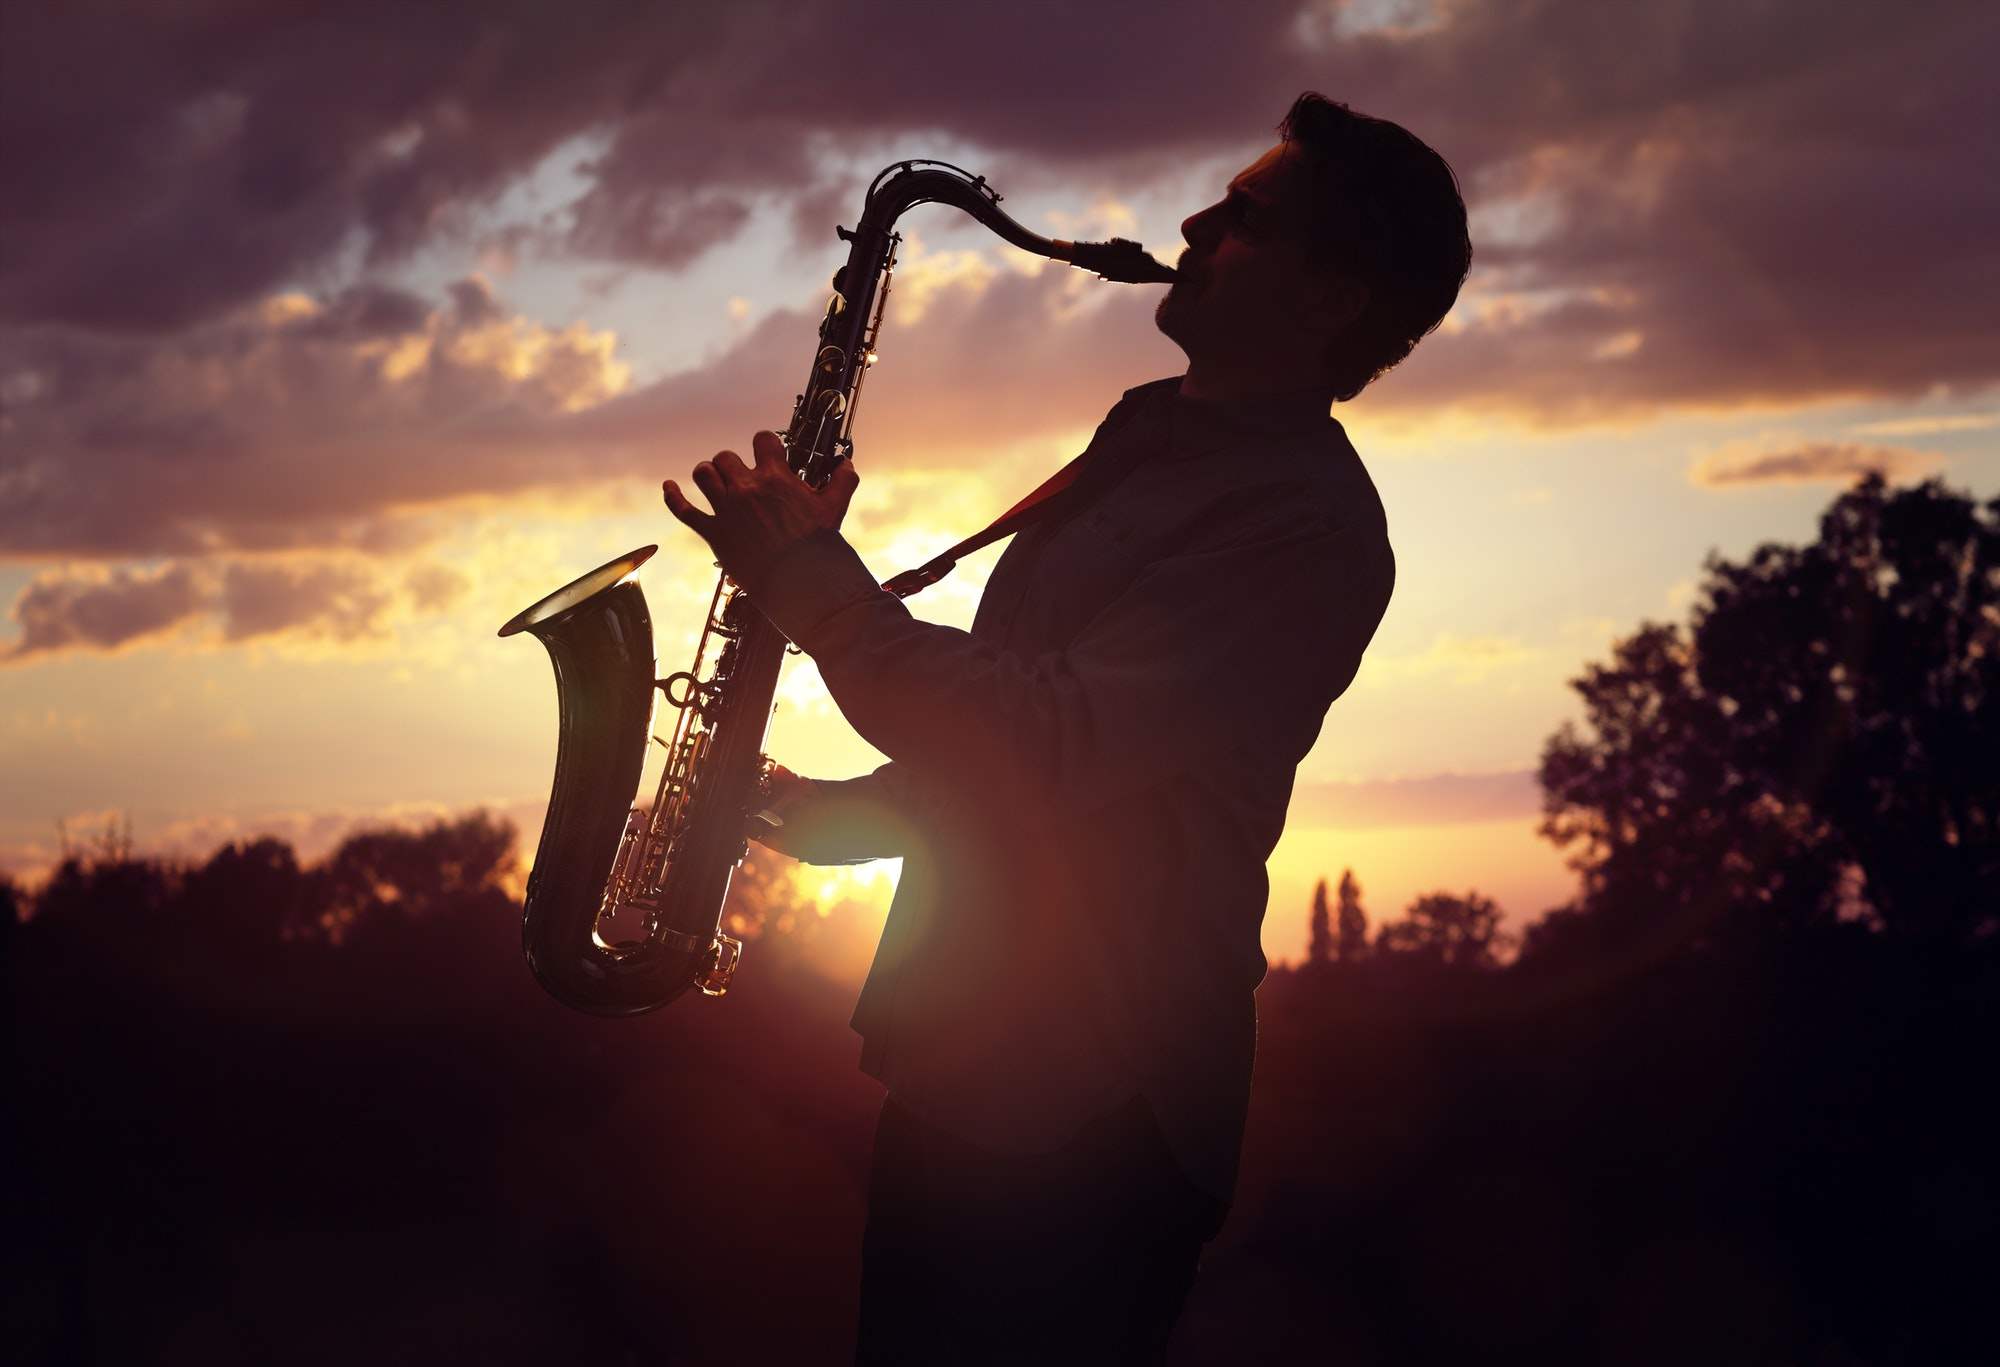 Saxophonist playing sax against sunset